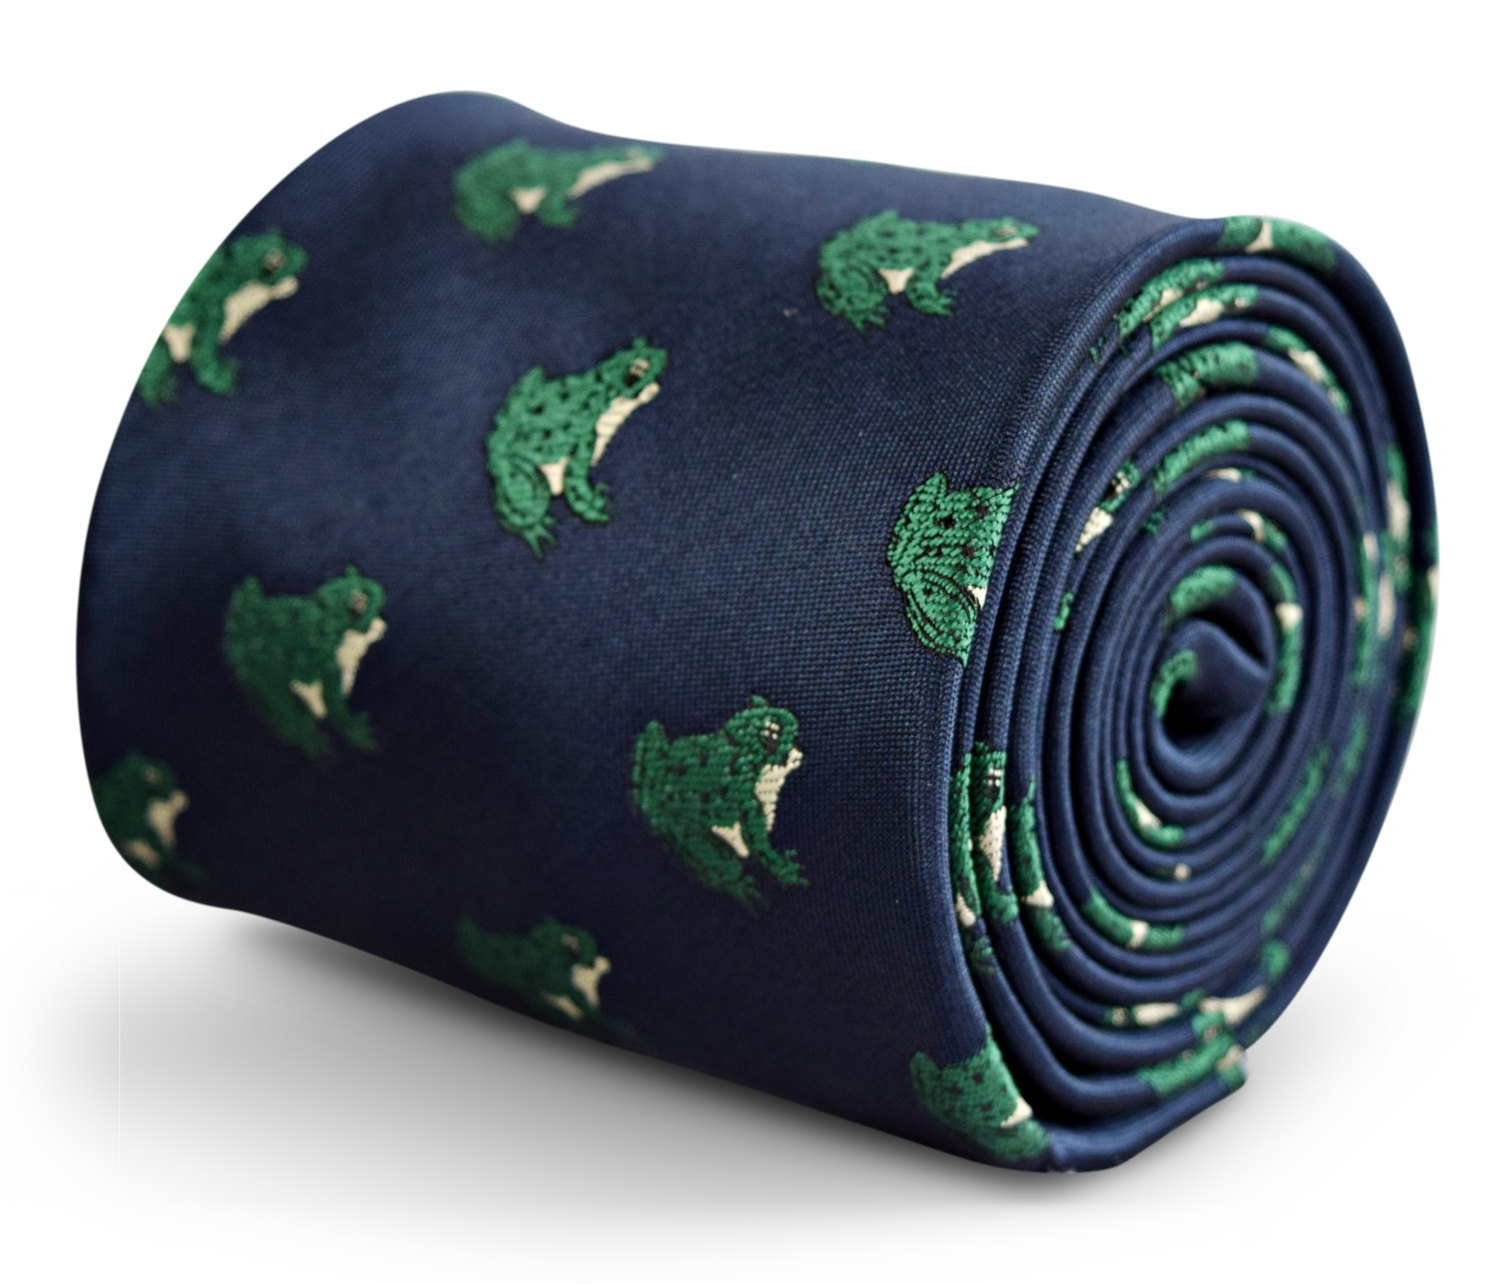 navy tie with green frog embroidered design with signature floral design to the